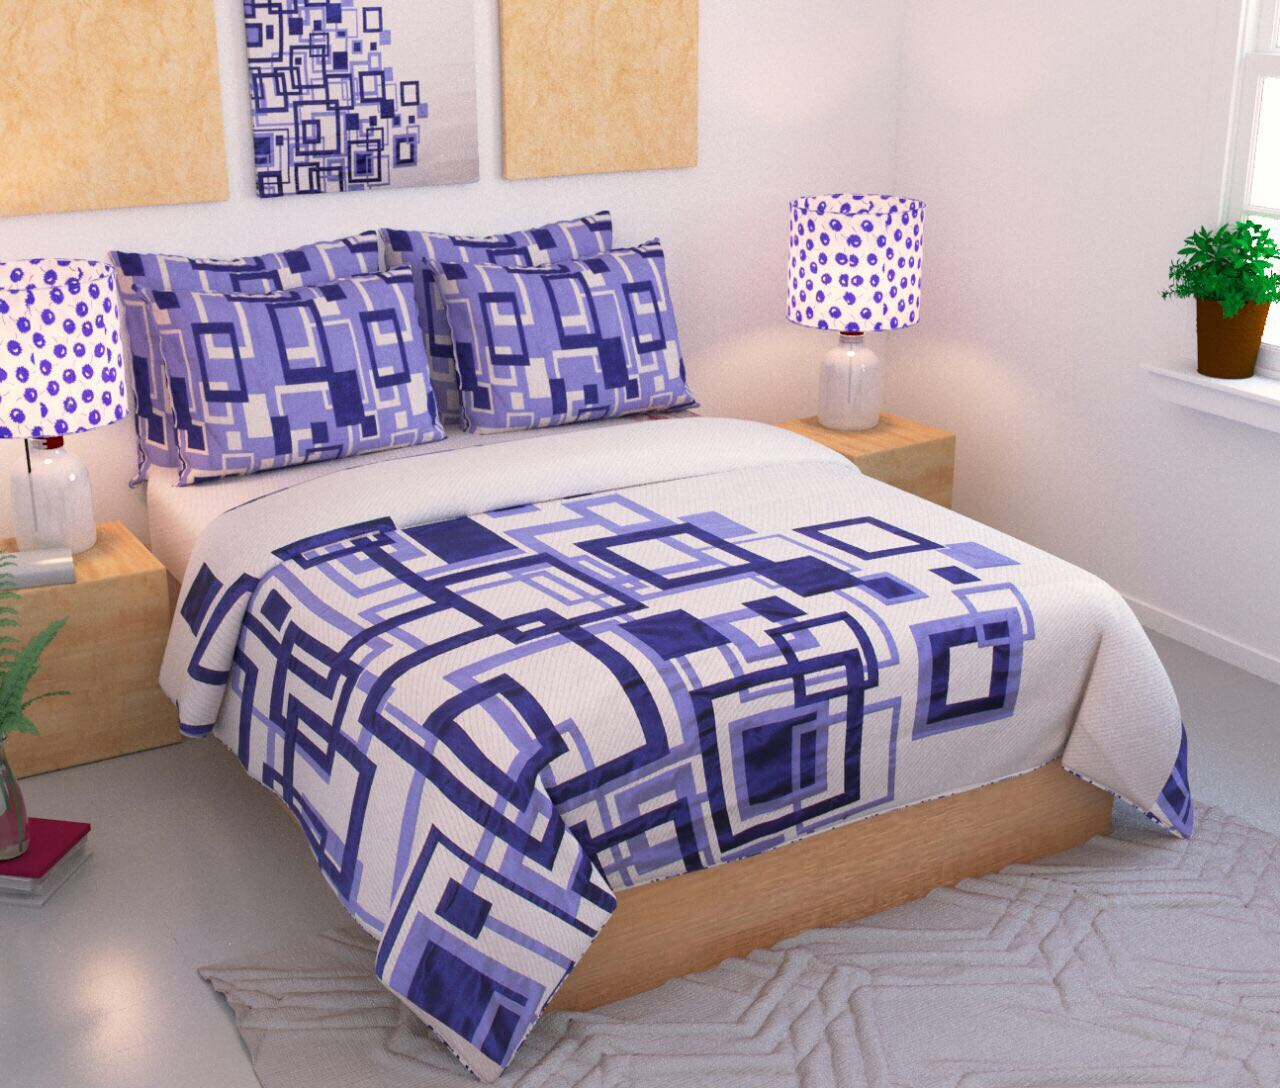 Channel of Maze Reversible Cotton Bedsheet - Royal Blue